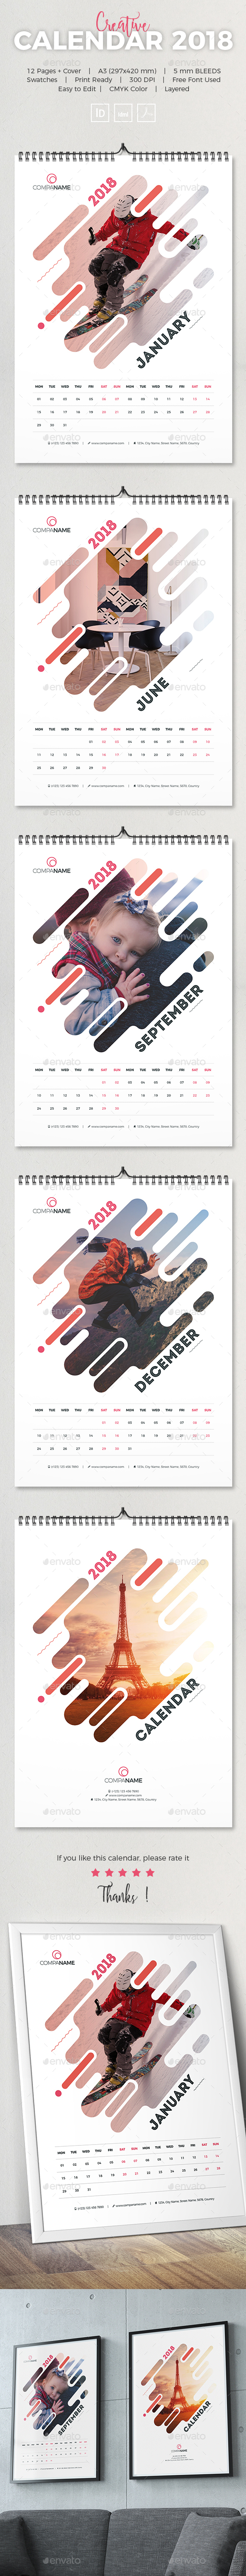 GraphicRiver Creative Calendar 2018 21187371